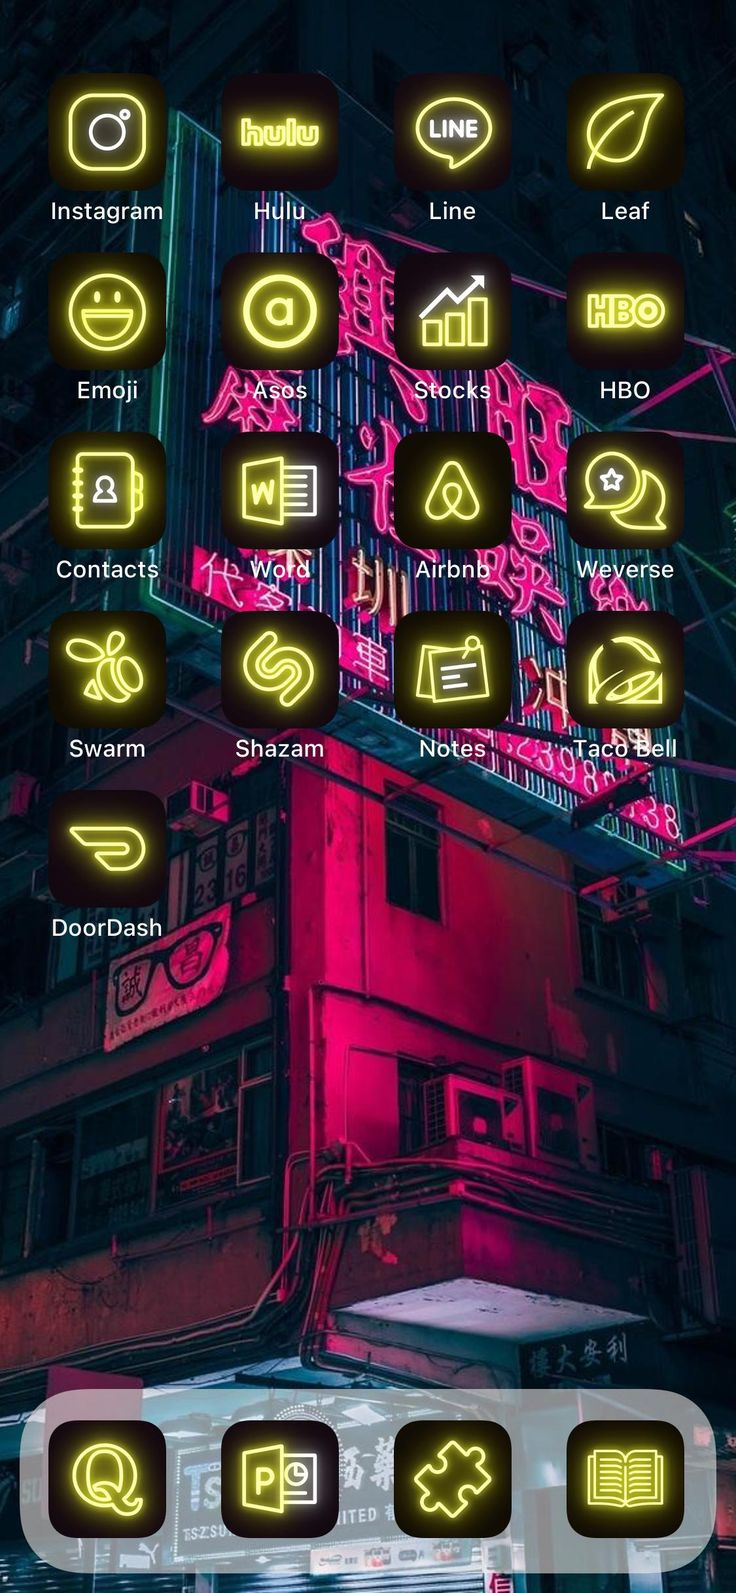 500 Ios 14 App Icon Pack Yellow Shining Neon Aesthetic For Iphone Home Screen Ios Shortcuts Ios Themes Bundle In 2021 App Icon App Covers Homescreen